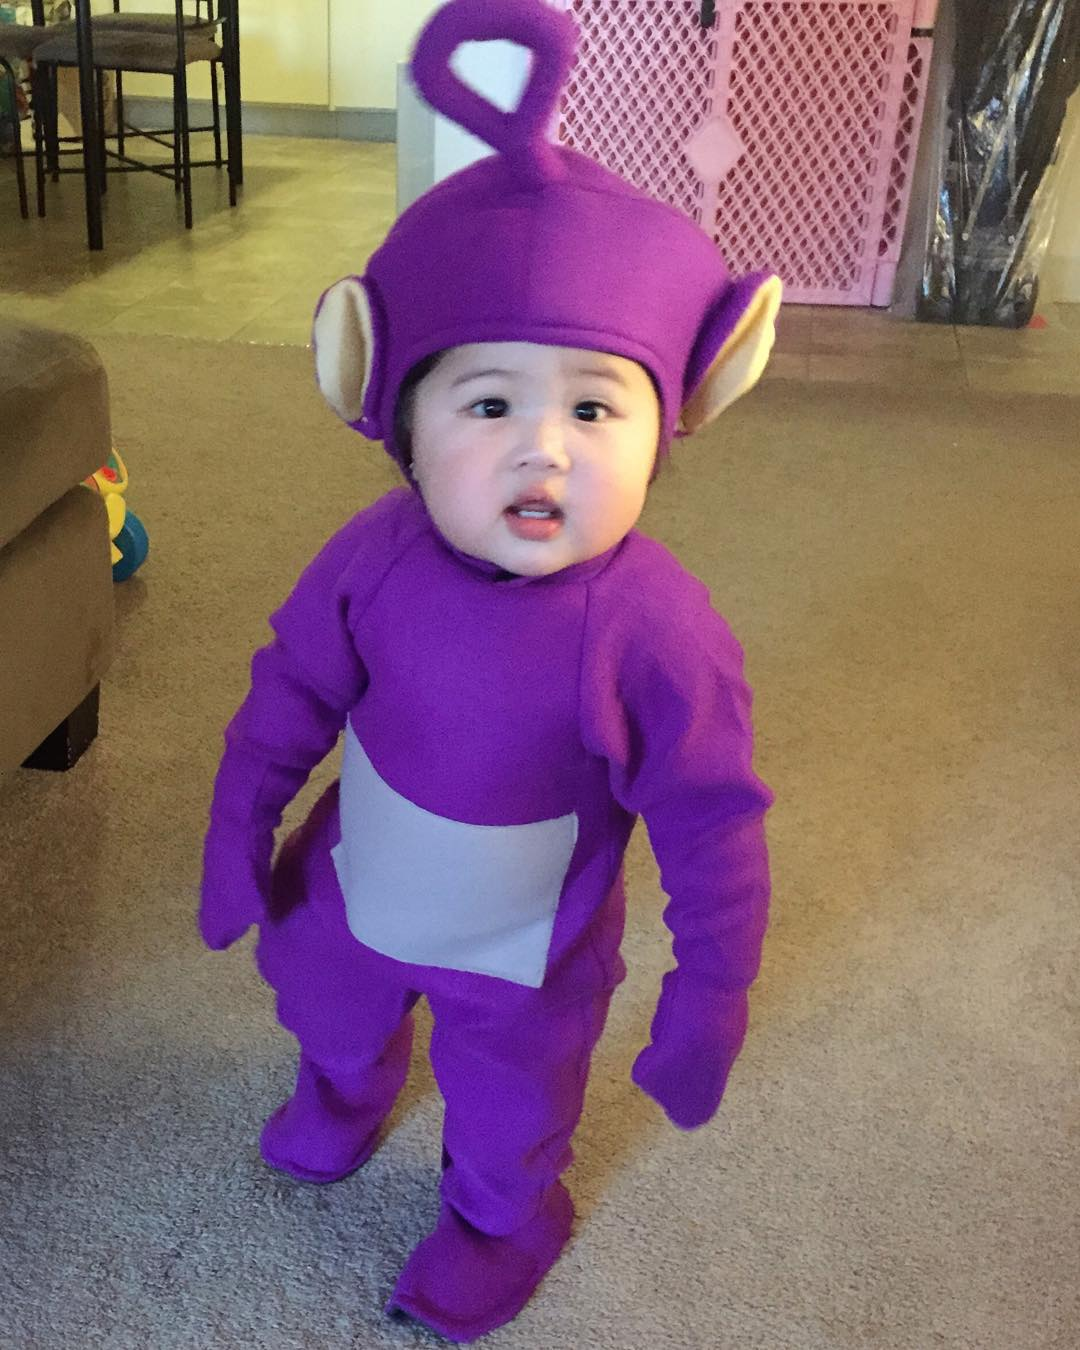 "<div class=""meta image-caption""><div class=""origin-logo origin-image none""><span>none</span></div><span class=""caption-text"">This little one loves Tinky Winky so much, she decided to dress up as the character for Halloween! Share your photos by tagging them on social media with #SpookyOn7! (Photo submitted to KGO-TV by @kiksdizon/Instagram)</span></div>"